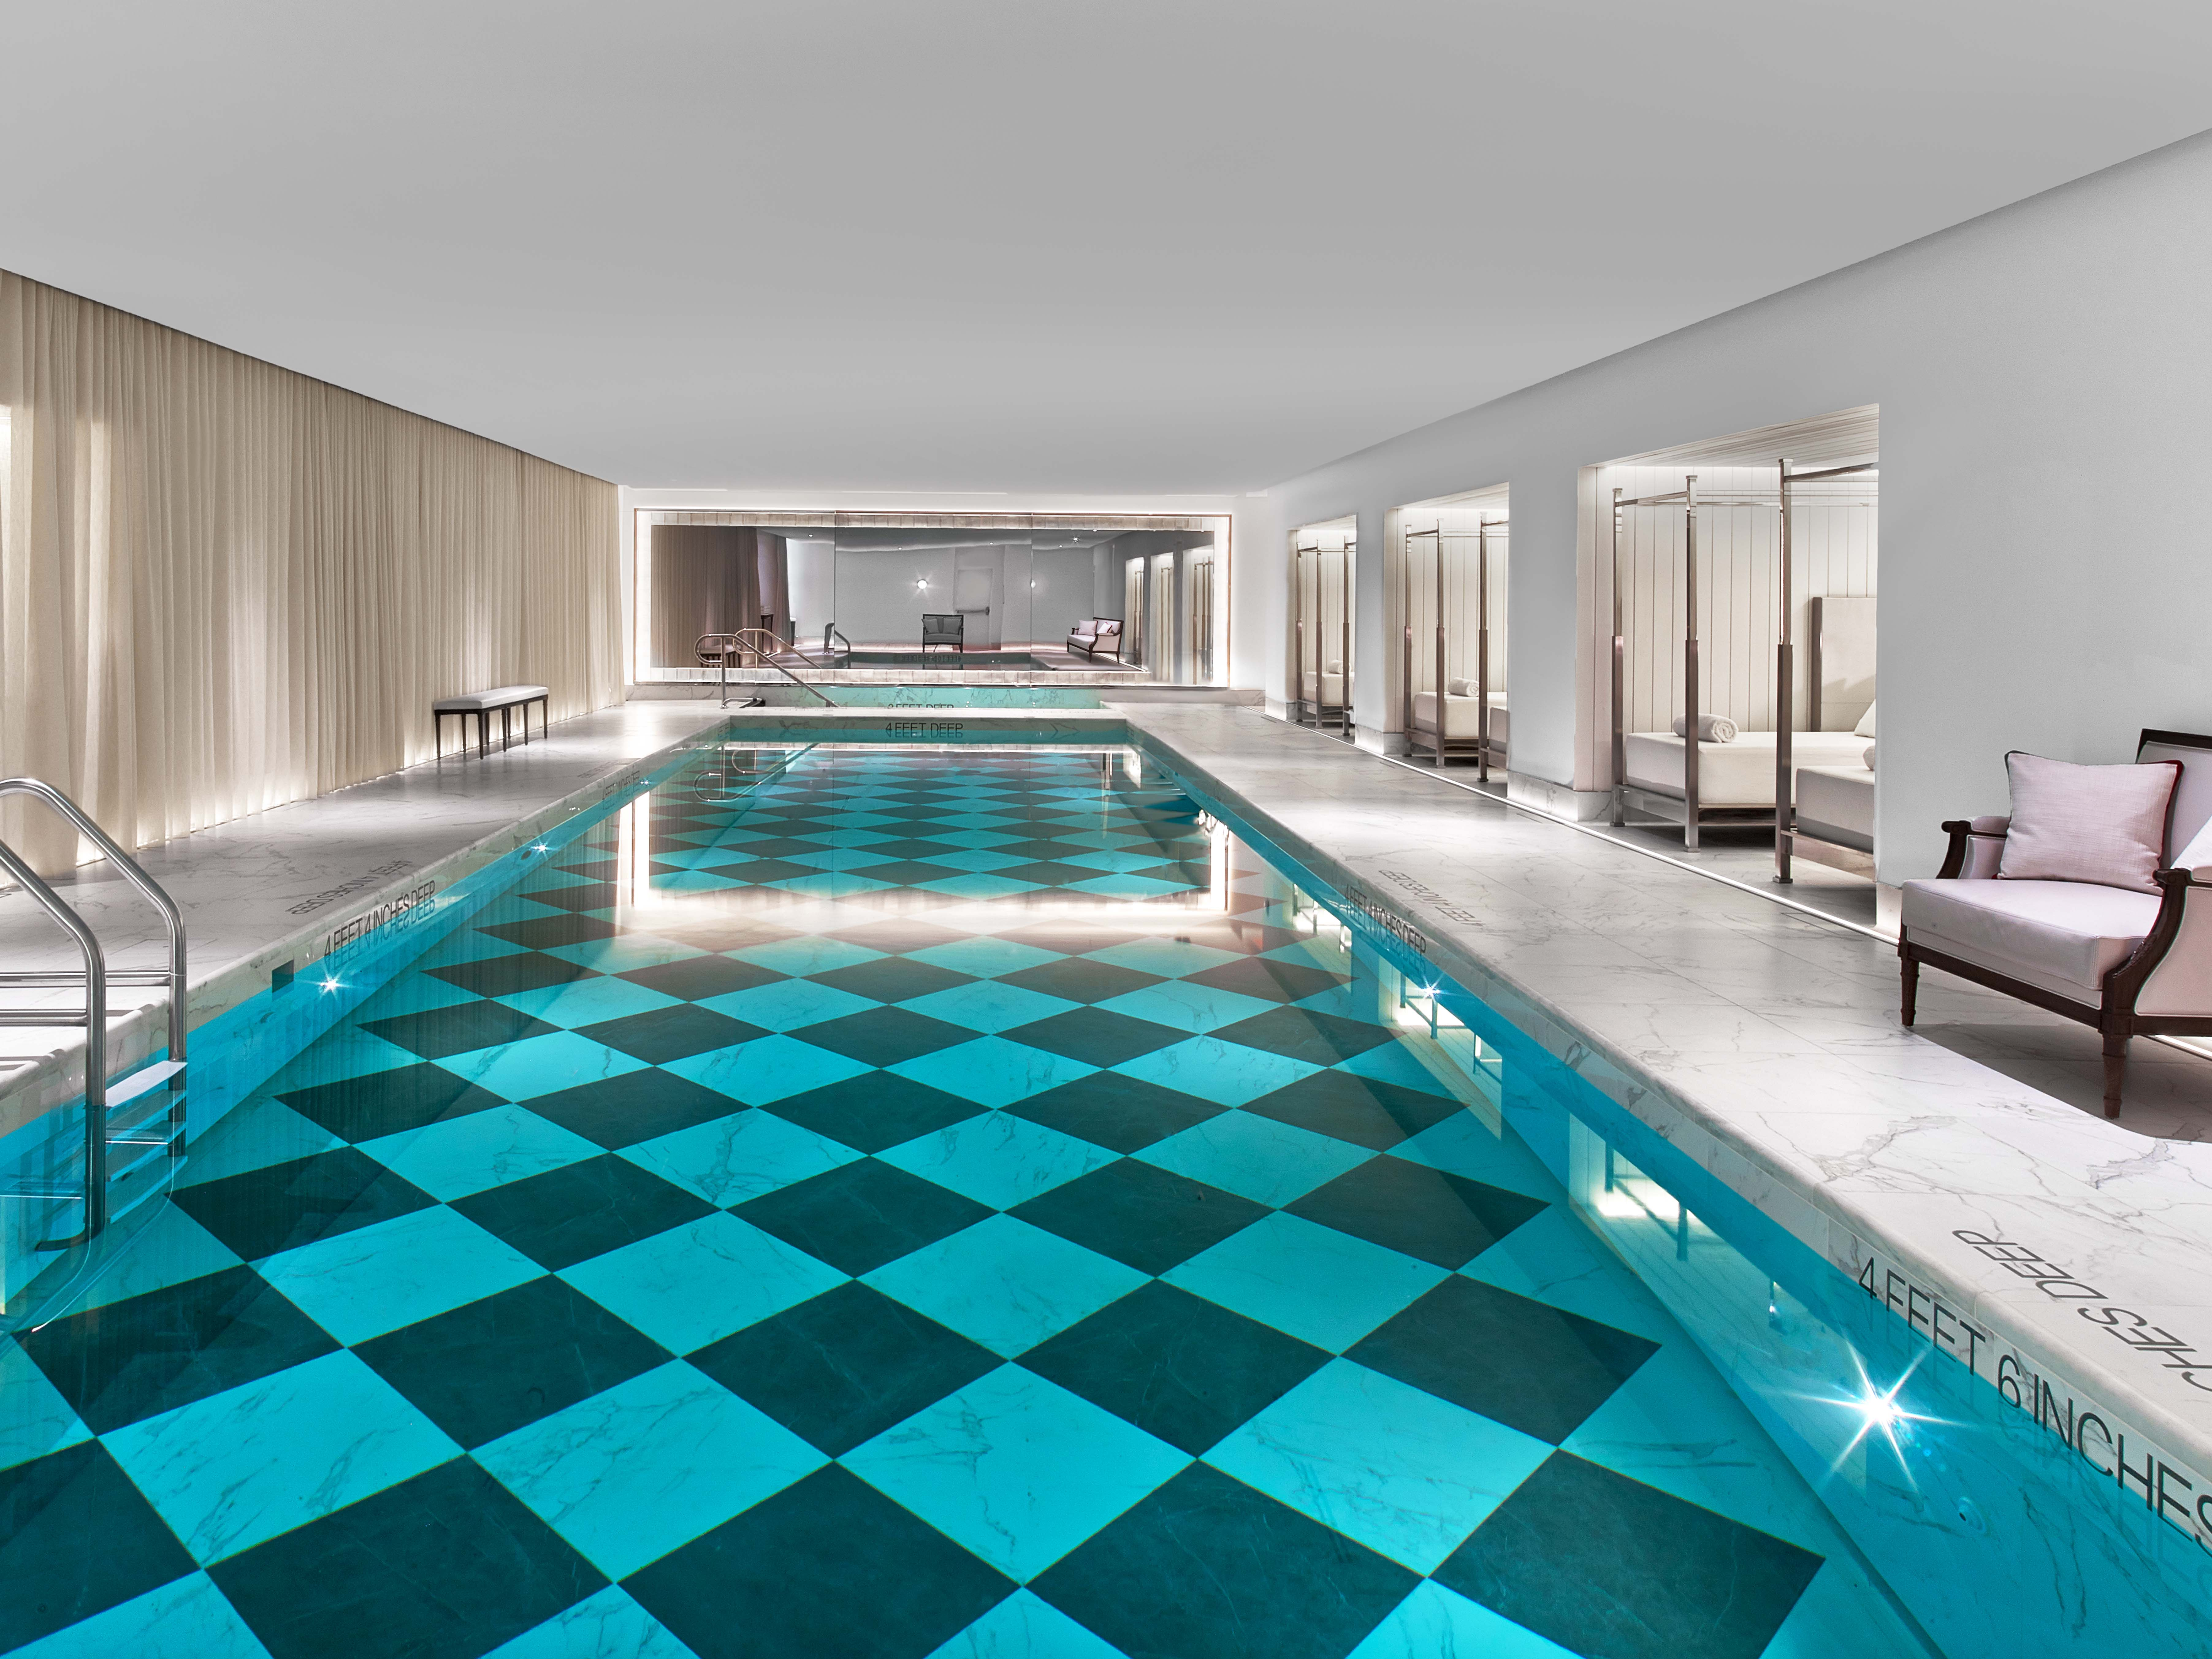 9.Baccarat Hotel NYC Pool